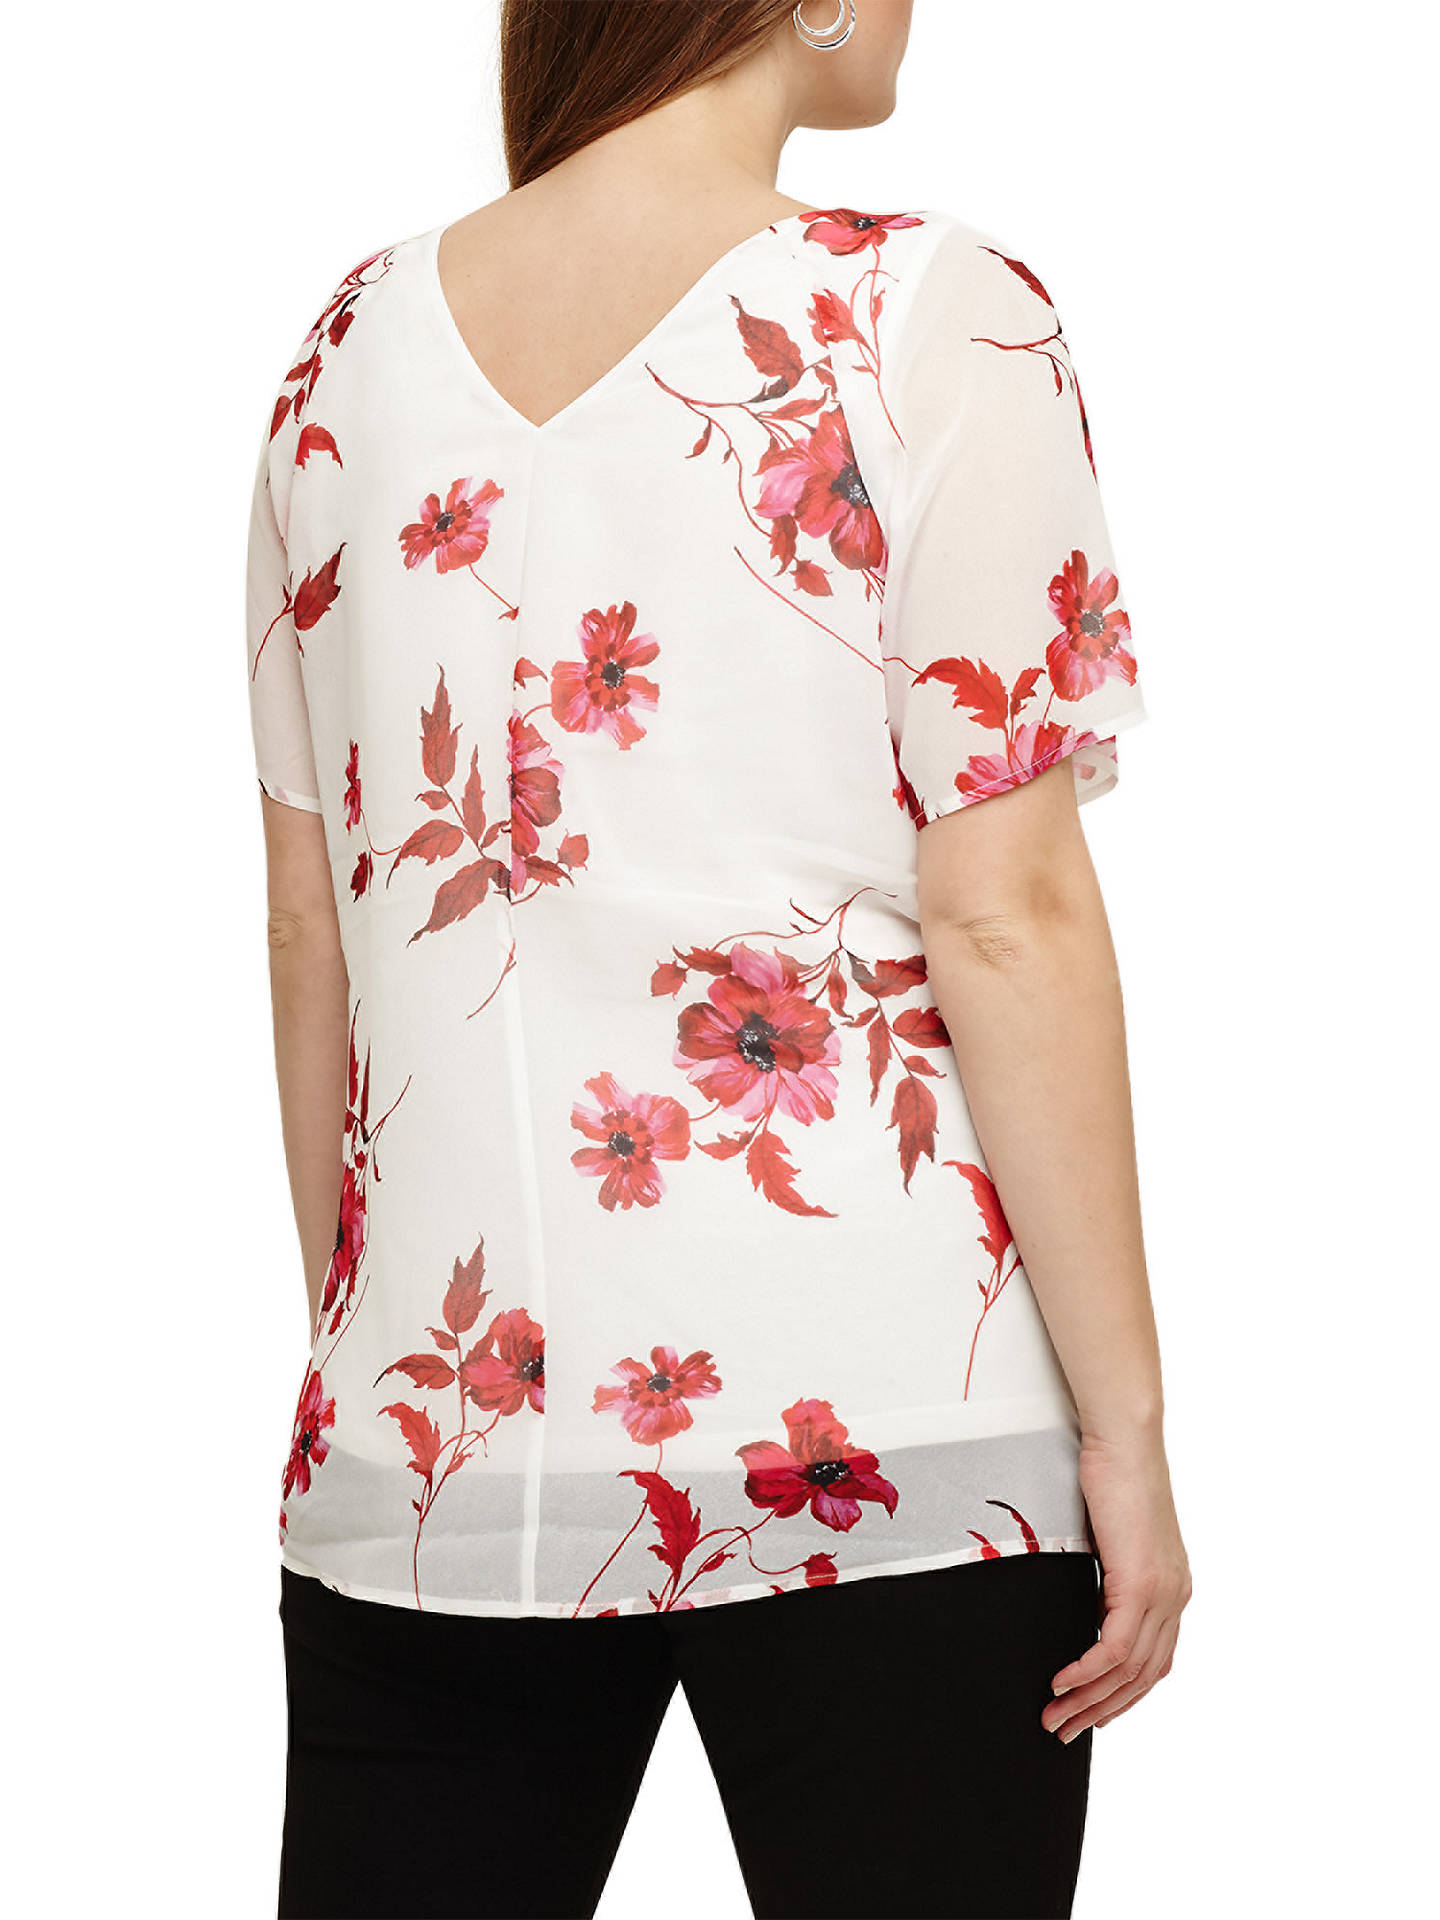 Buy Studio 8 Mia Floral Print Blouse, White/Multi, 16 Online at johnlewis.com